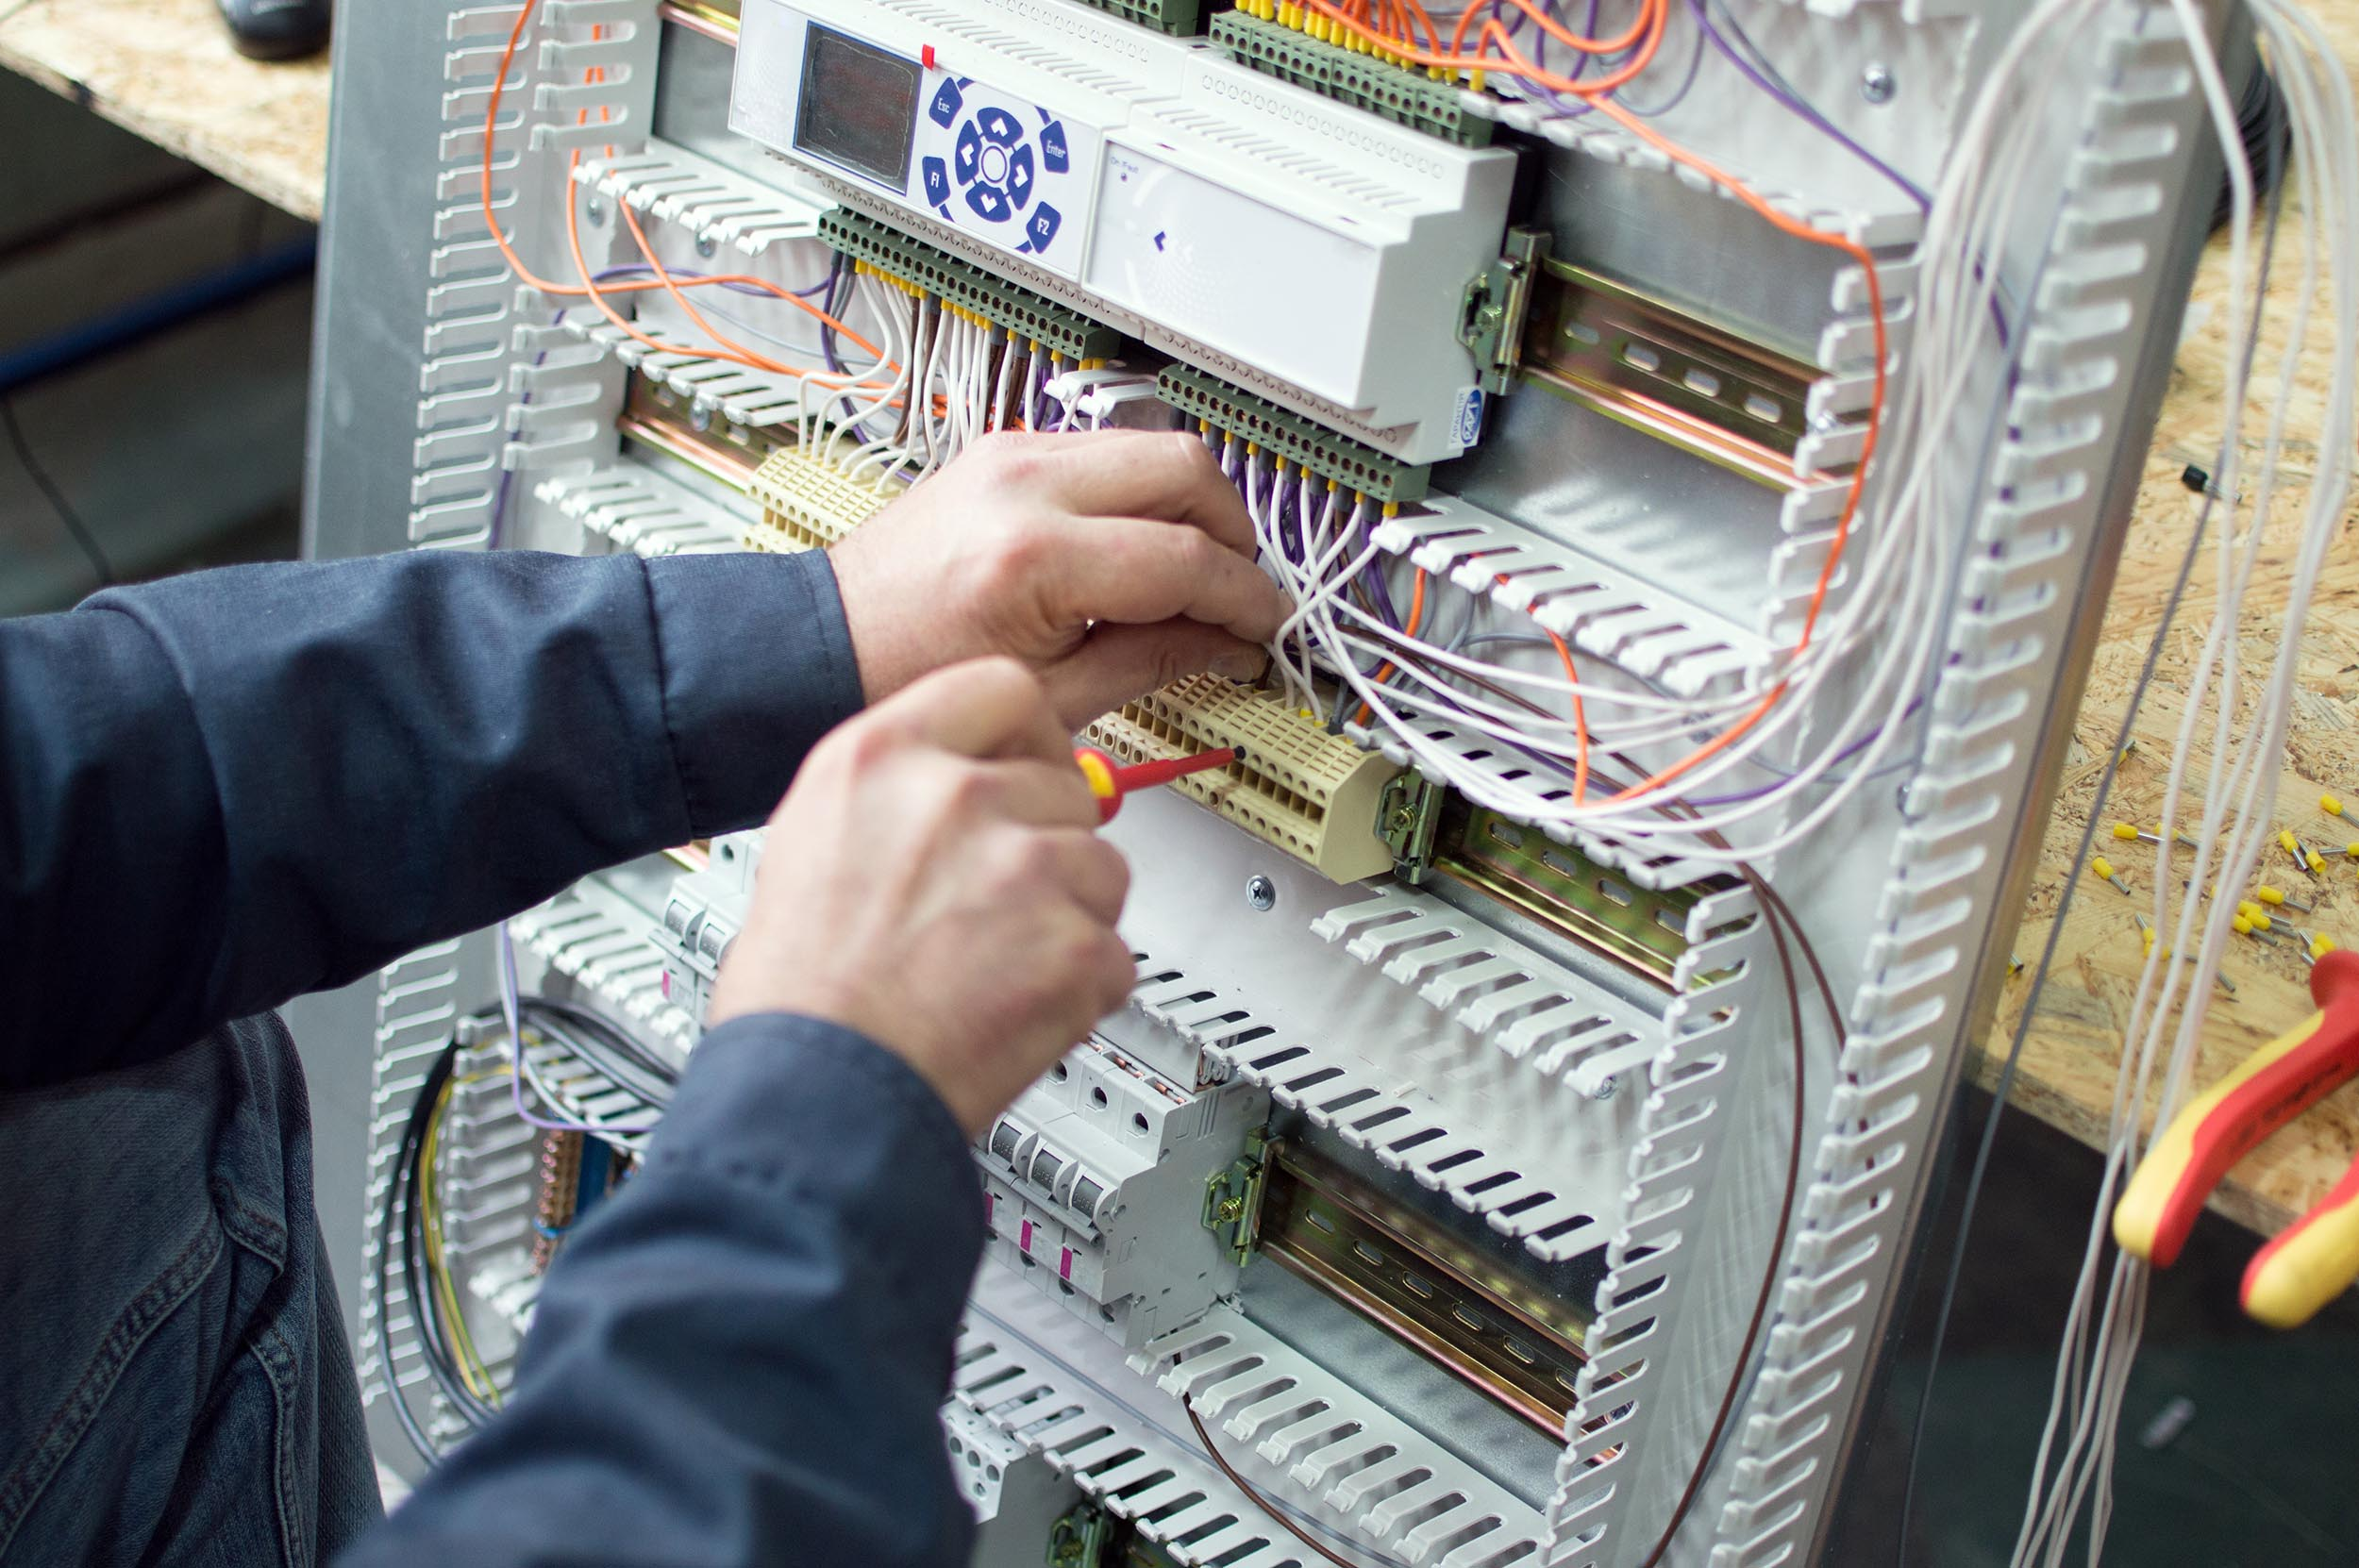 Electrician Apprenticeship – How To Become An Electrician